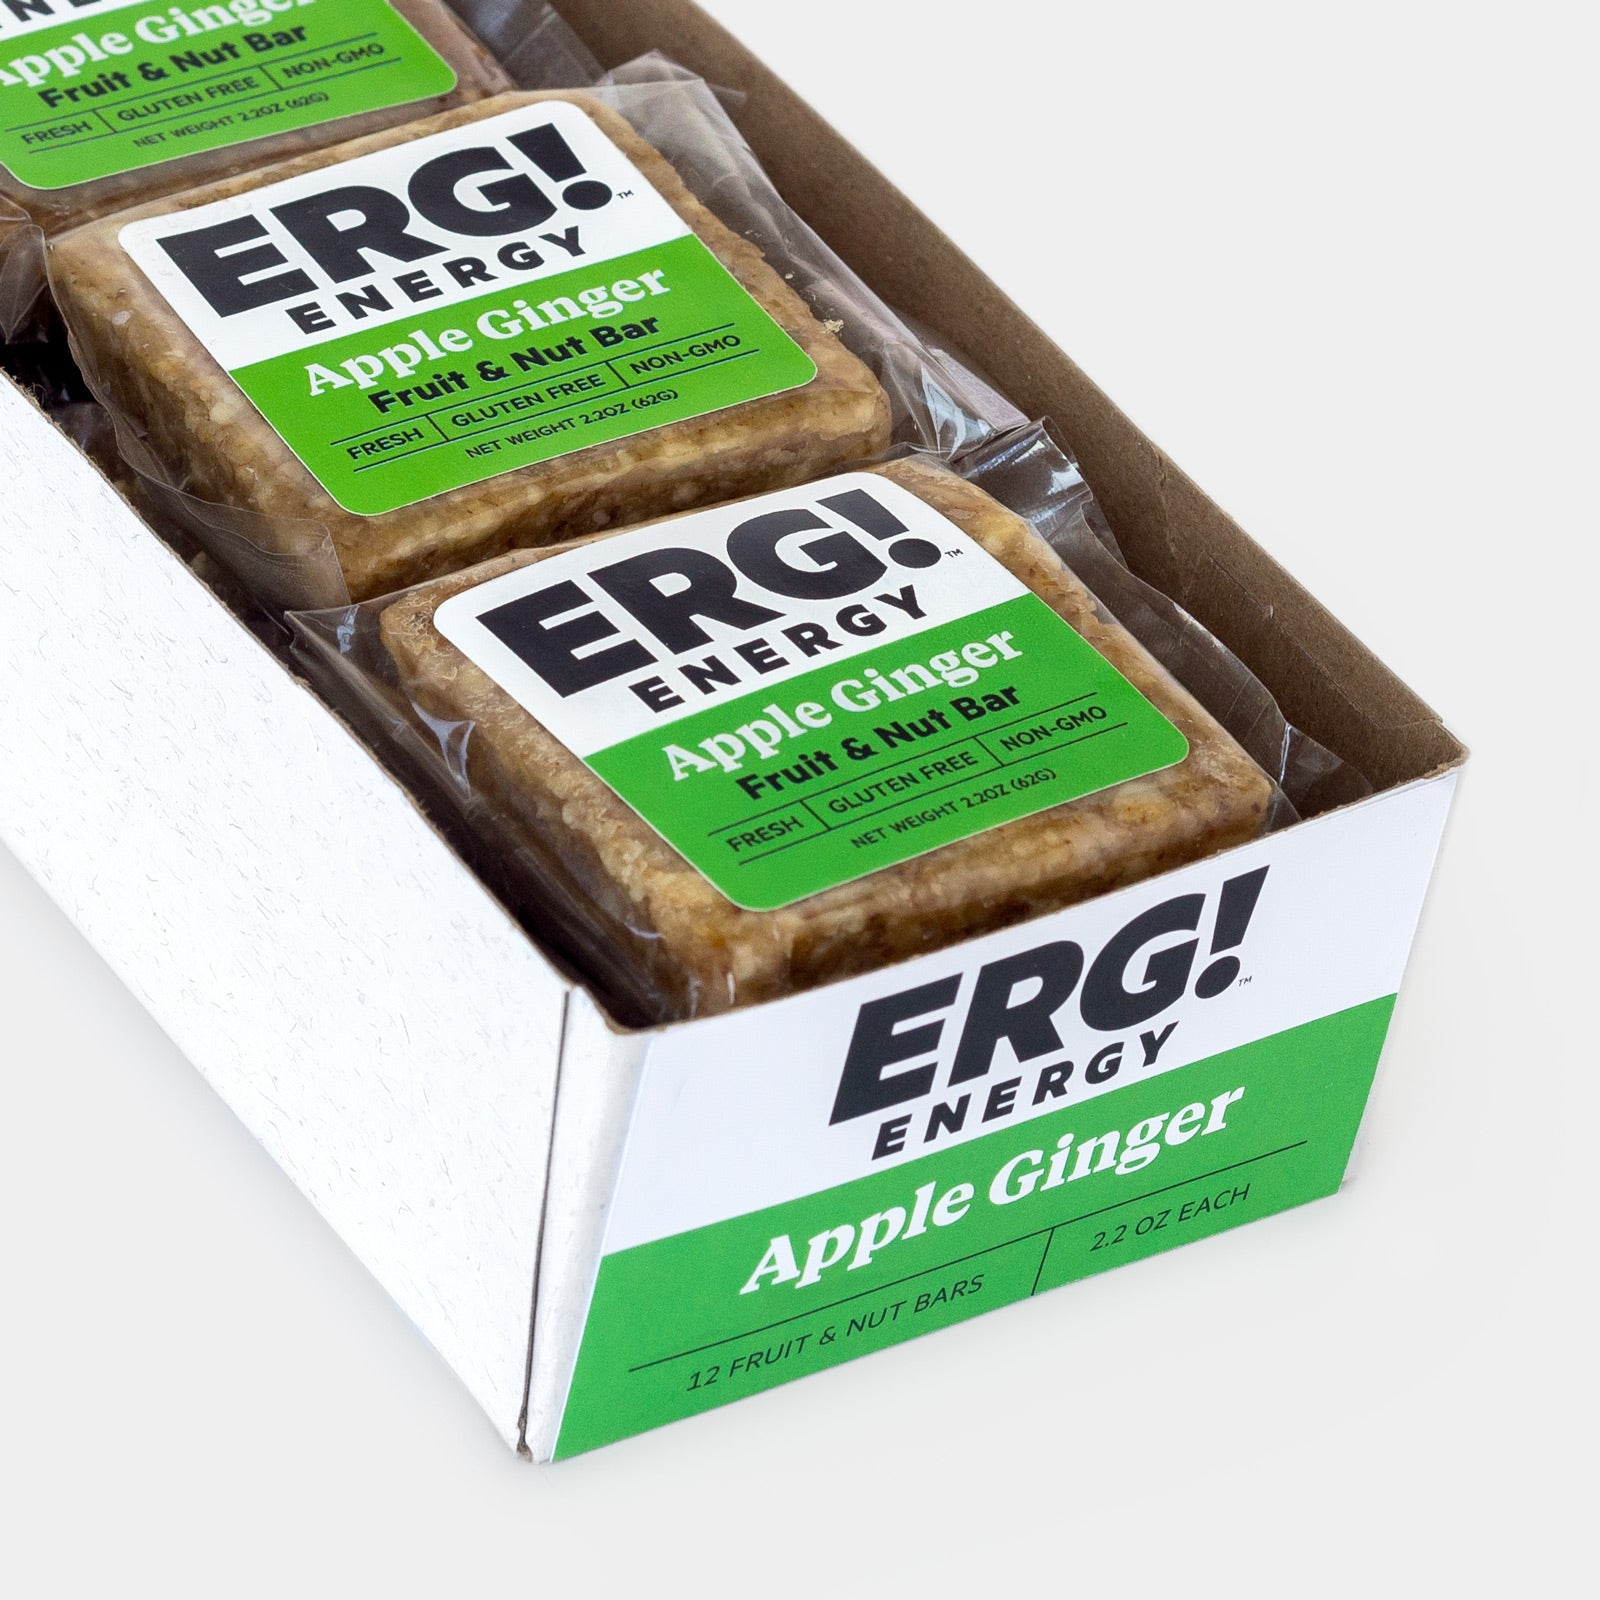 Apple Ginger ERG! - Box of 12 Bars